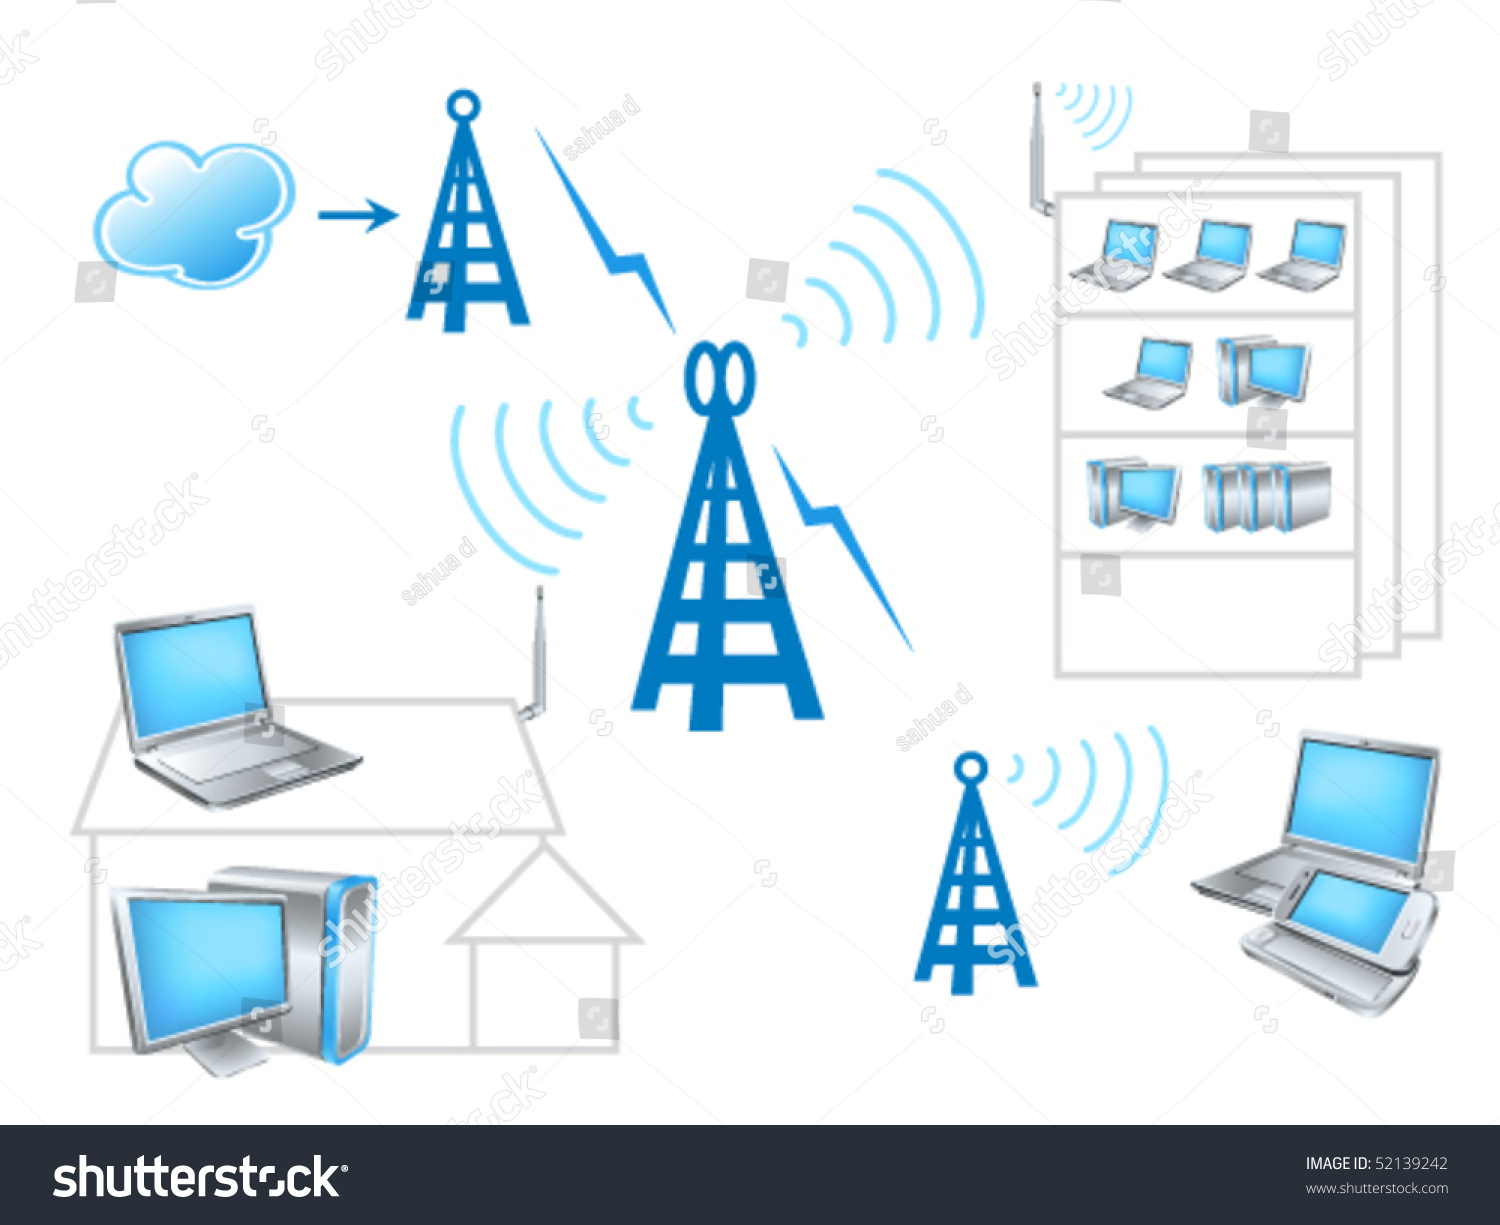 stock vector wimax network diagram with glossy hi tech devices and symbols 52139242 wi max network diagram glossy hitech devices stock vector (royalty